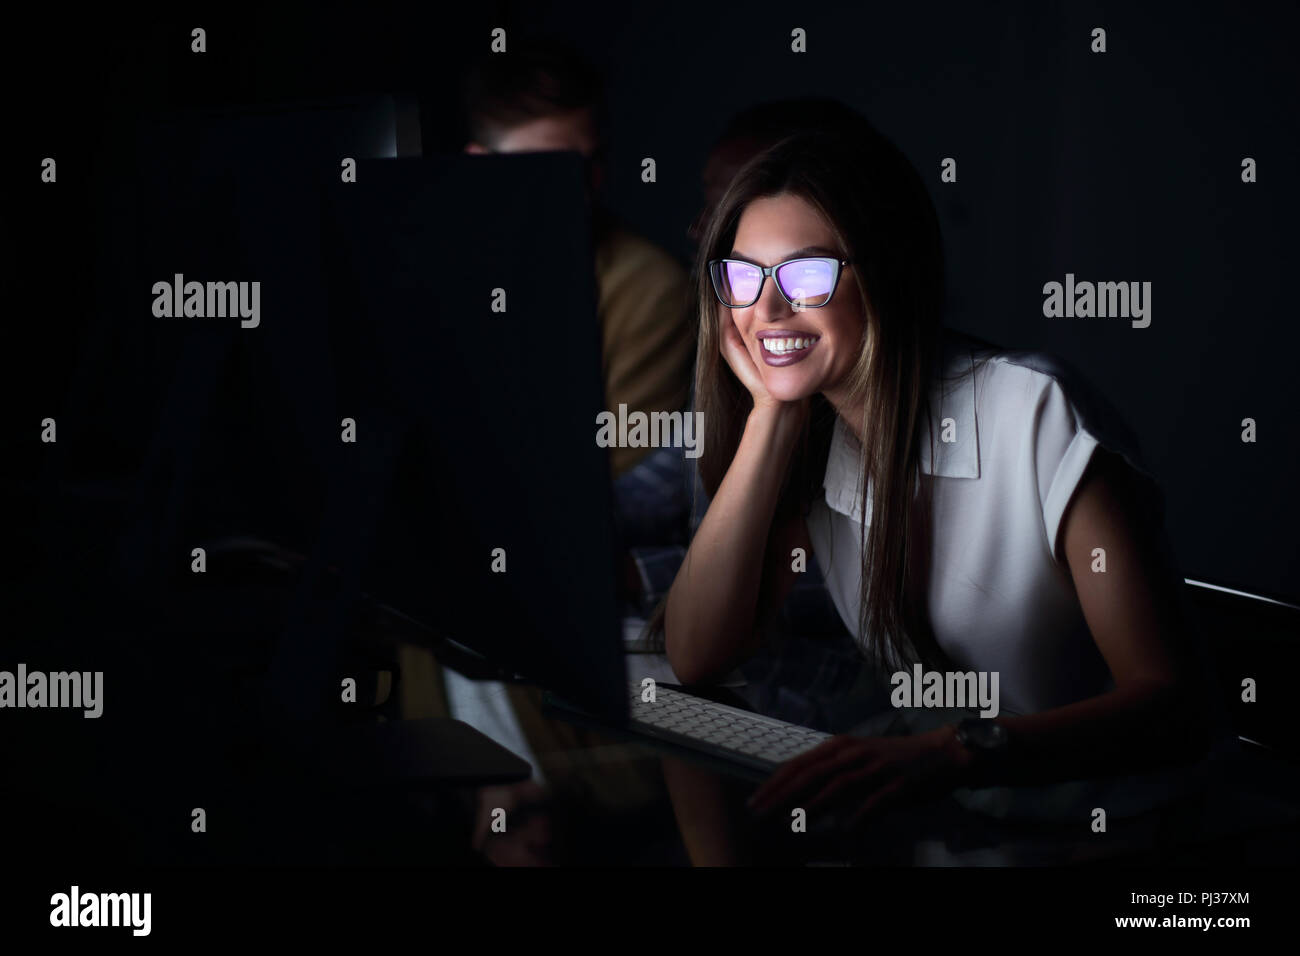 portrait of a modern business woman in the workplace - Stock Image